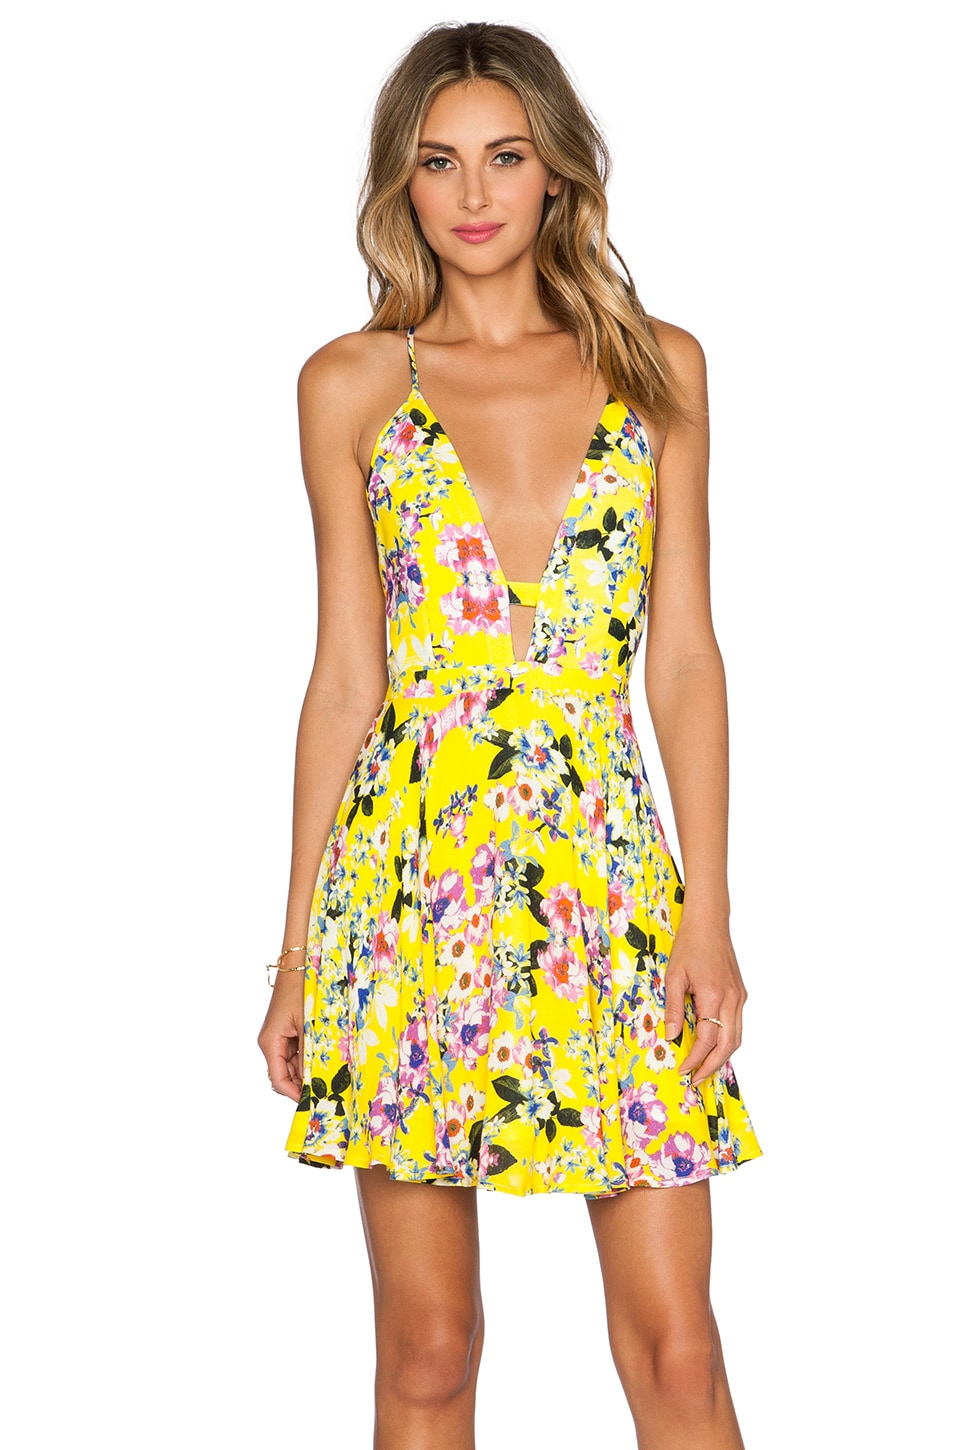 NBD x Naven Twins Everytime Skater Dress in Canary Floral